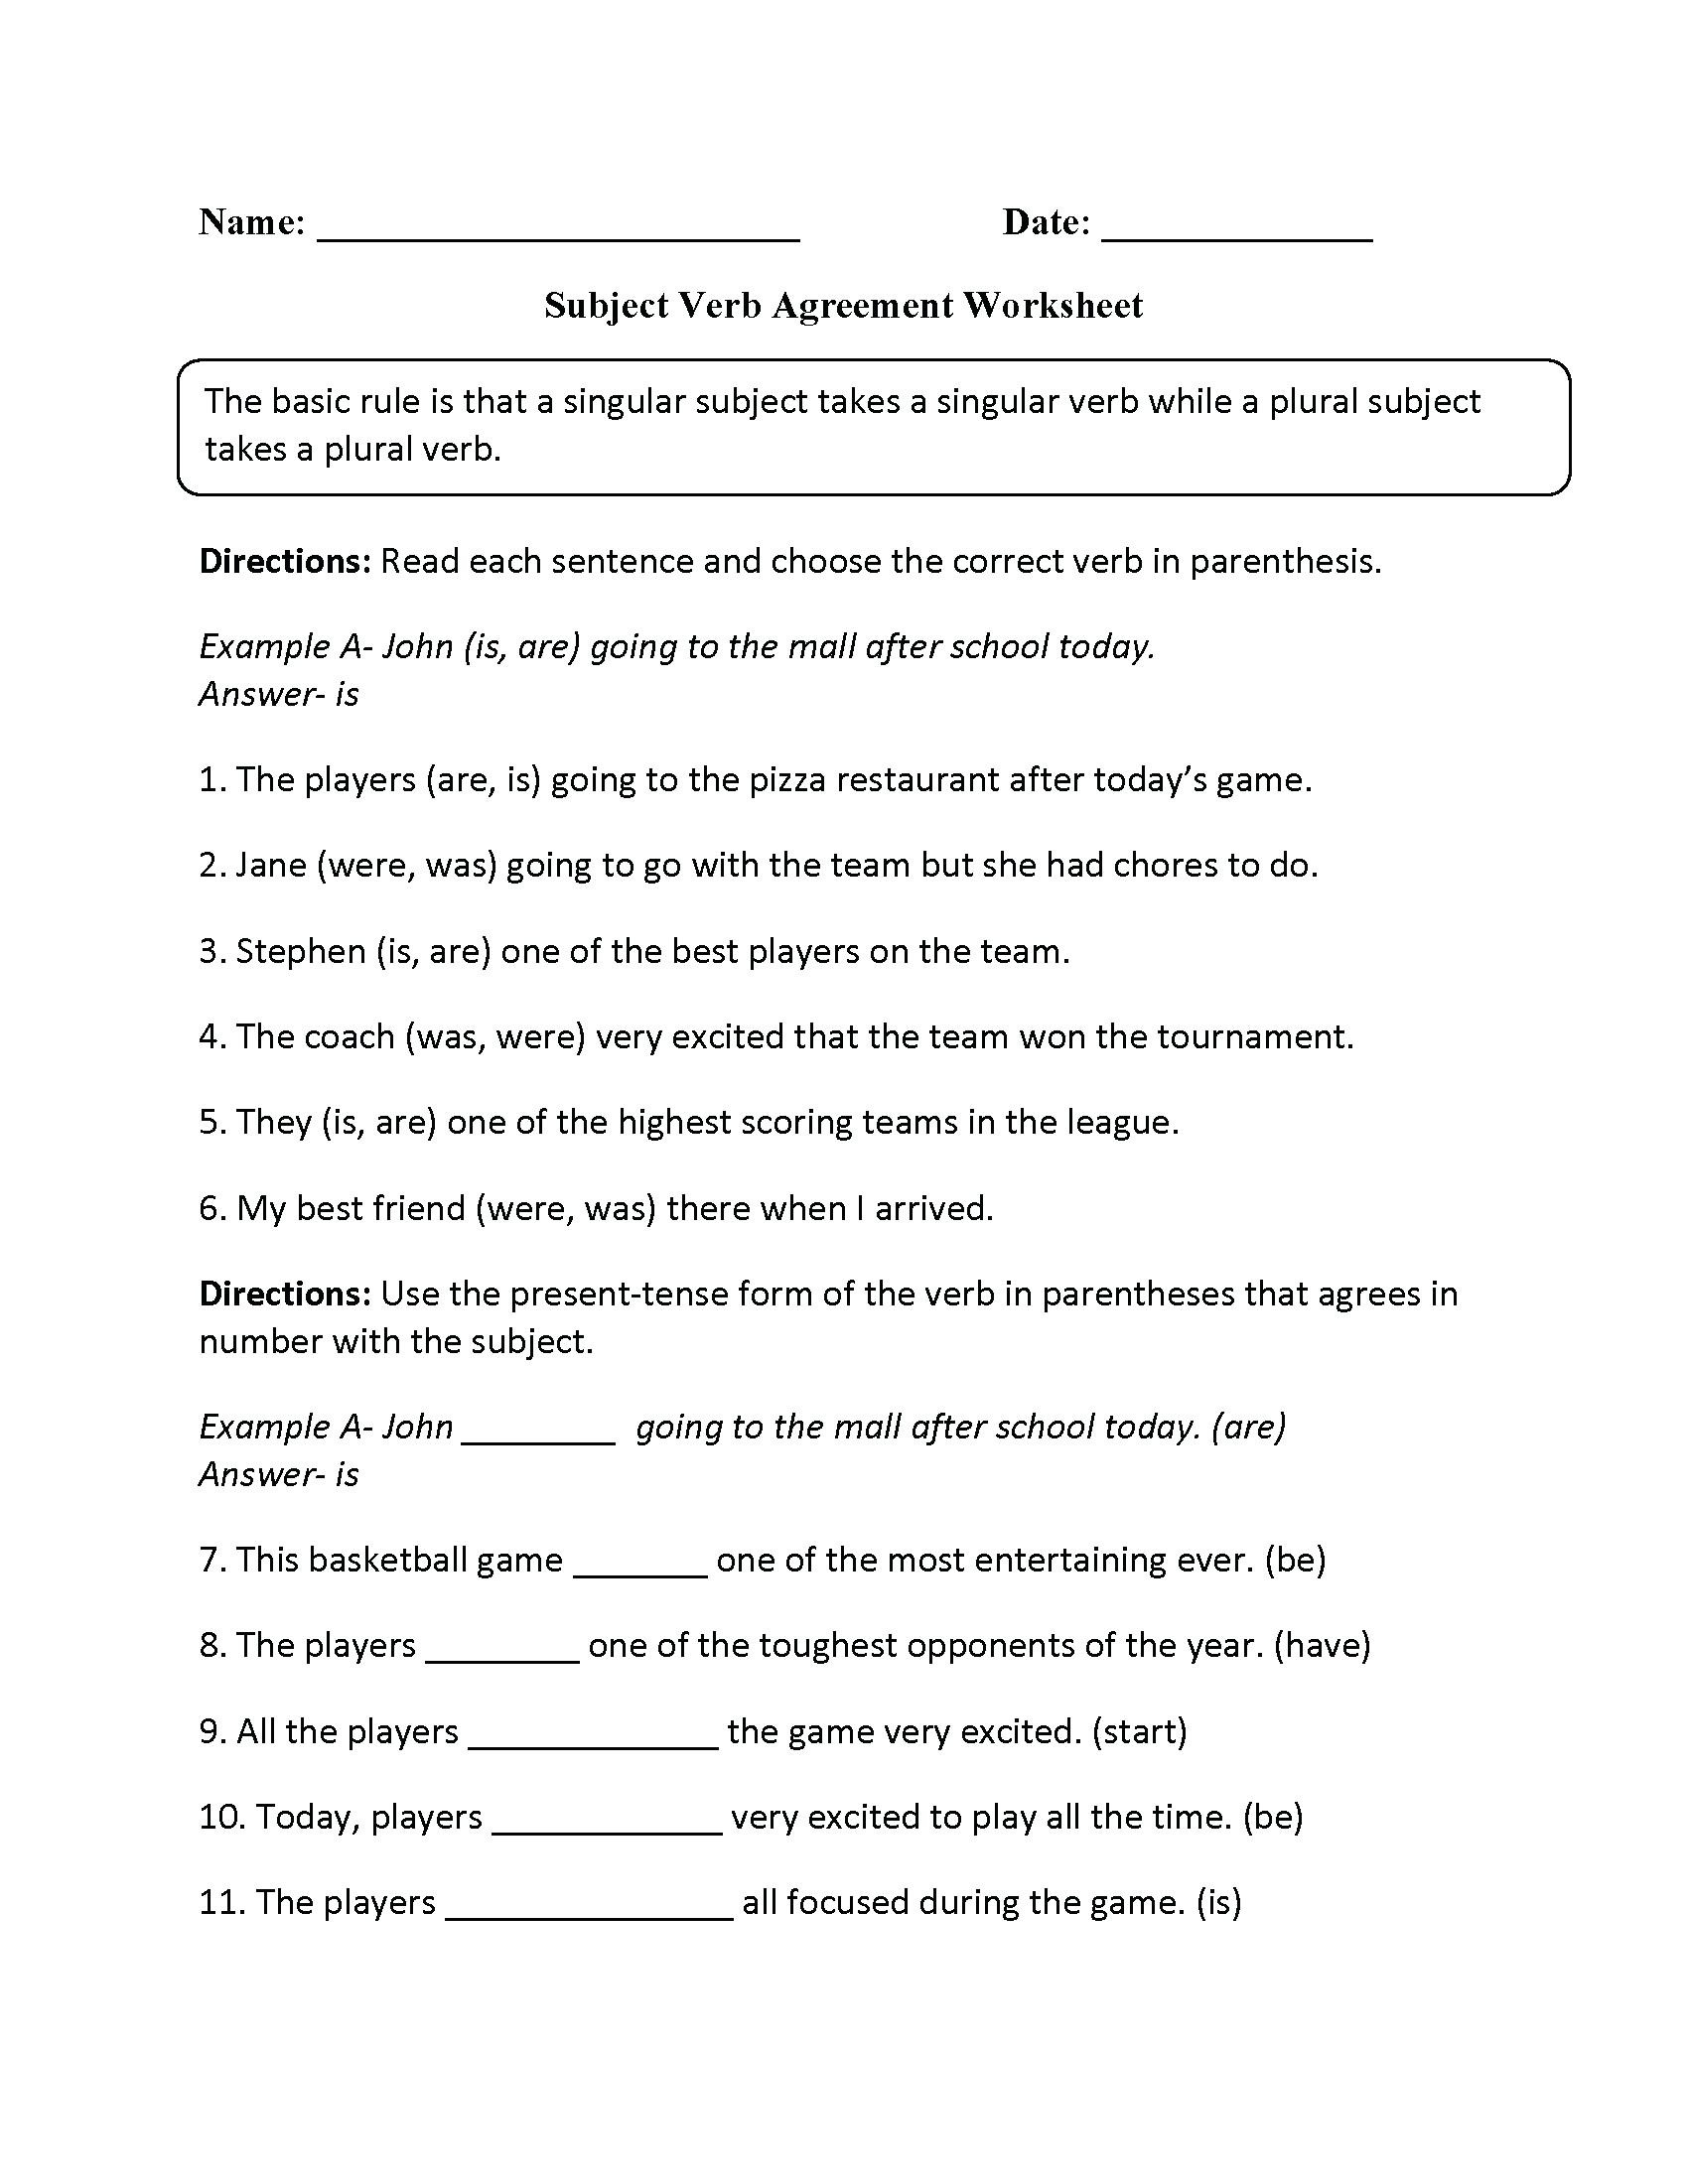 Grammar Worksheets for Grade 6 Monthly Archives June 2020 English Reading Prehension